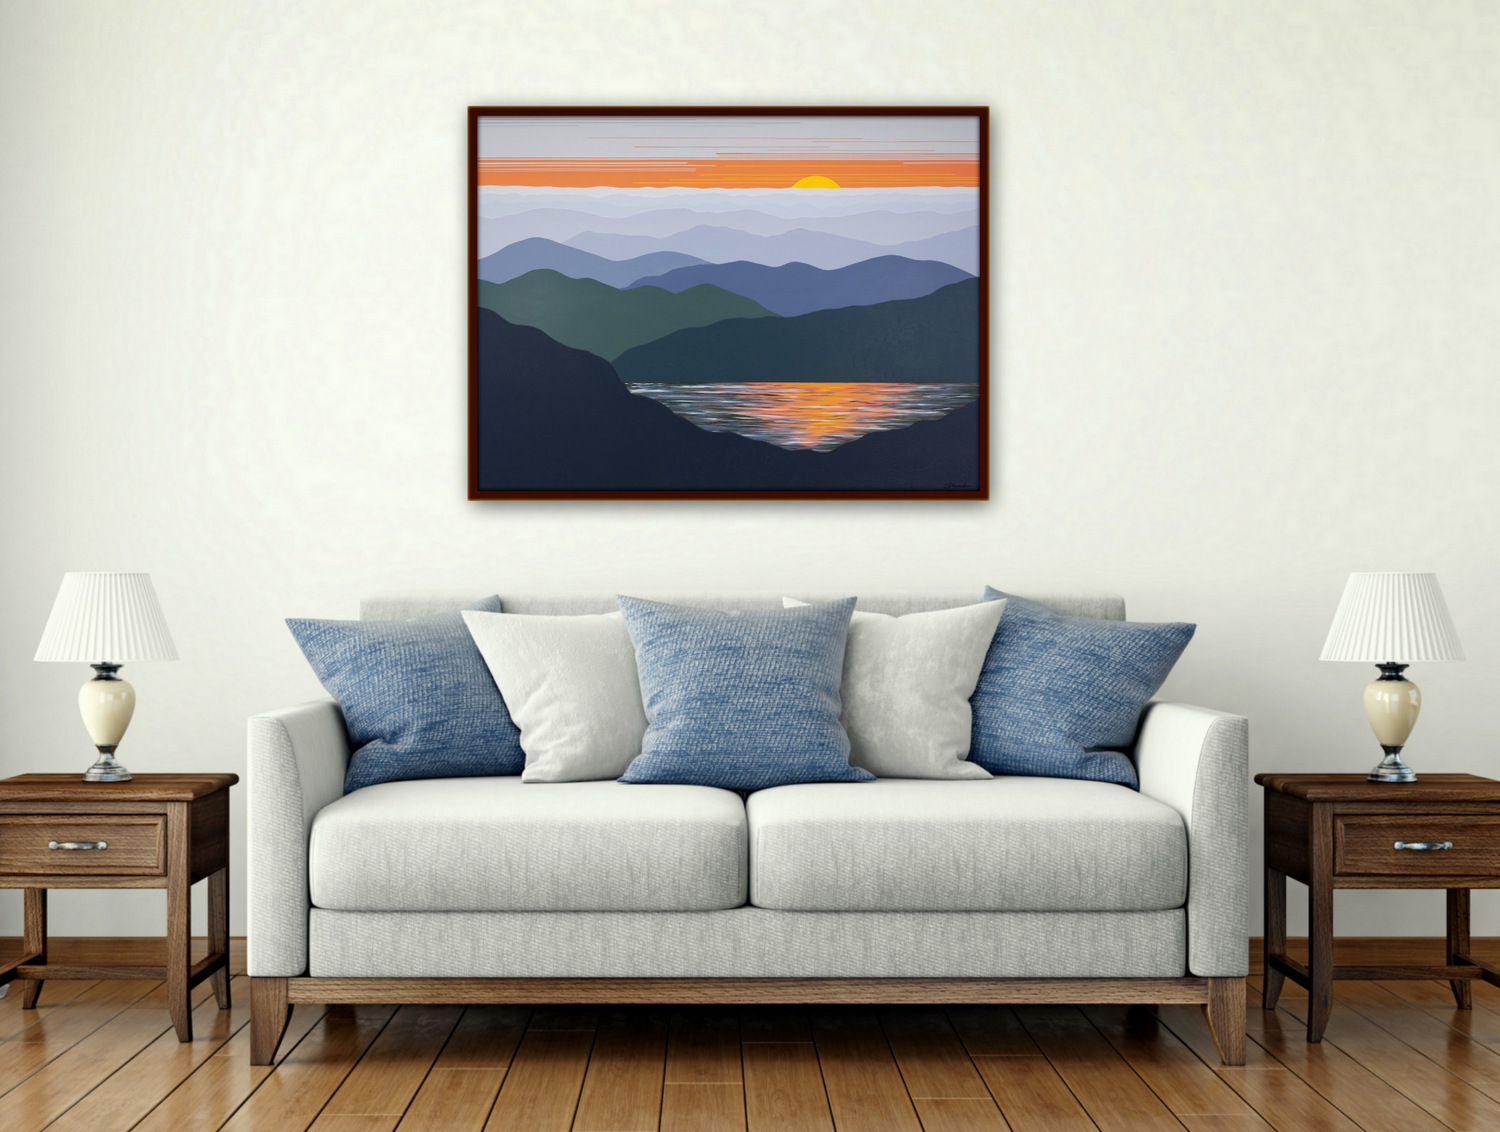 Commission Dimensional Landscape Paintings, Cindy Lou Chenard, Asheville, North Carolina-026.jpg